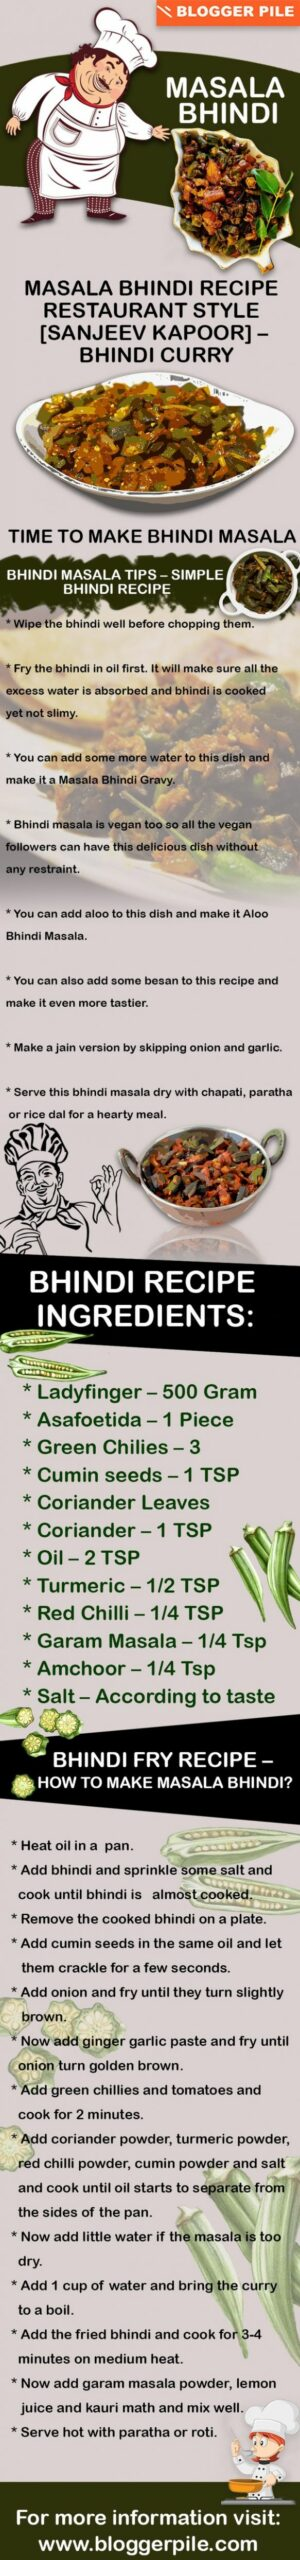 What are the best ways to cook bhindi masala? - Quora - Cooking Recipes Quora